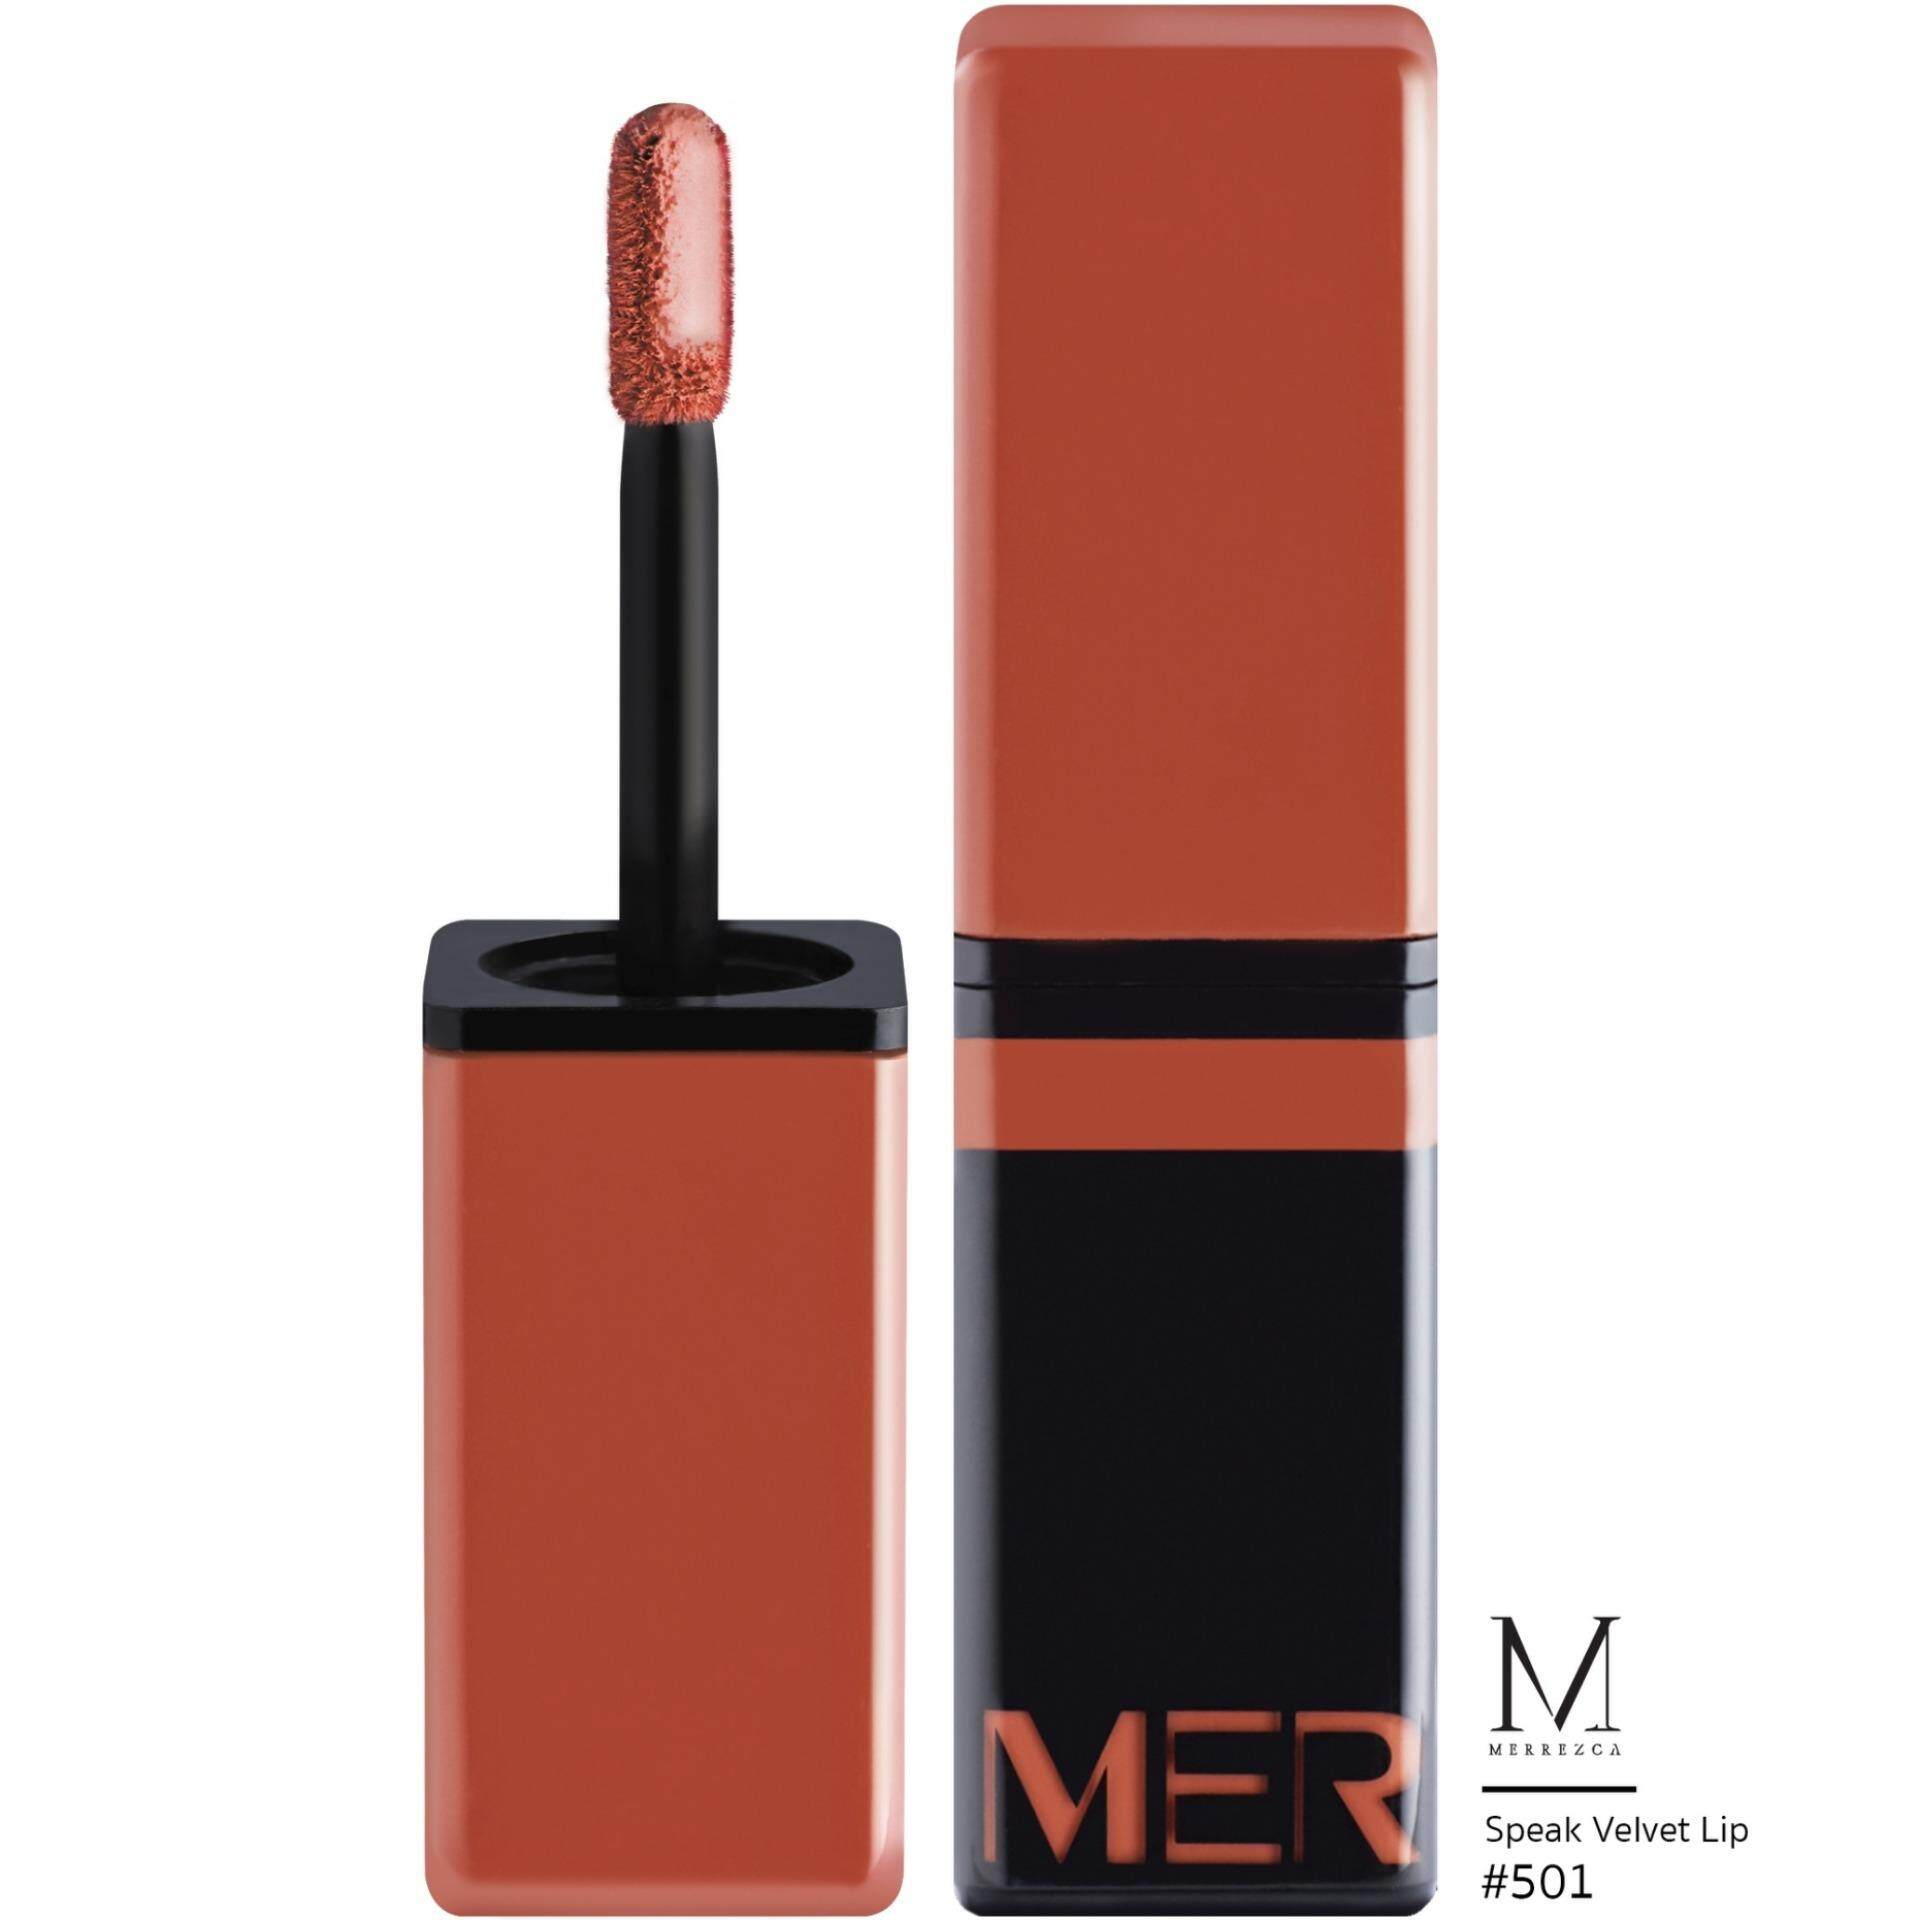 Merrez'ca Speak Velvet lip #501Poppy Flower